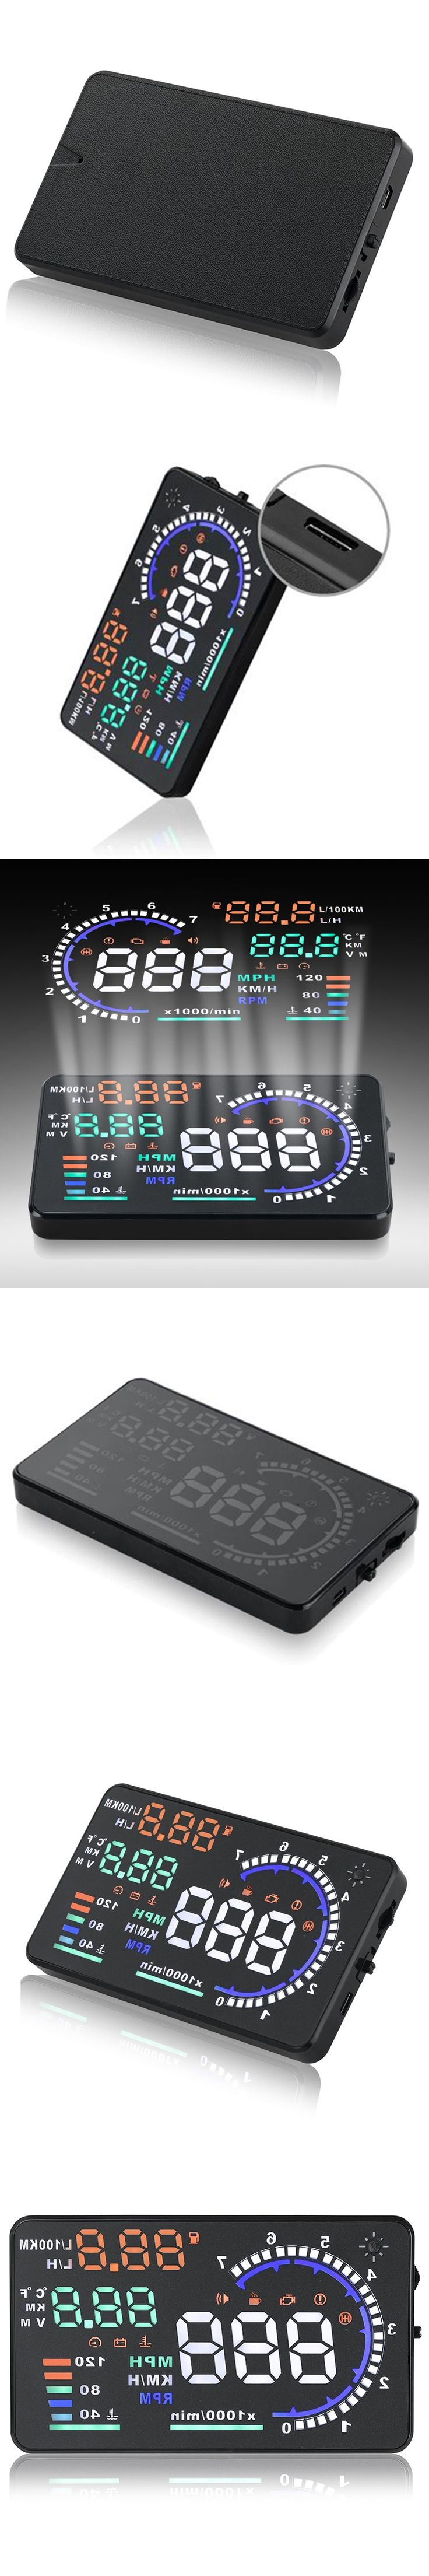 Universal Car styling HUD Head Up Display Car Speed Projector Velocimetro Auto Car Speedometer OBD2 Interface